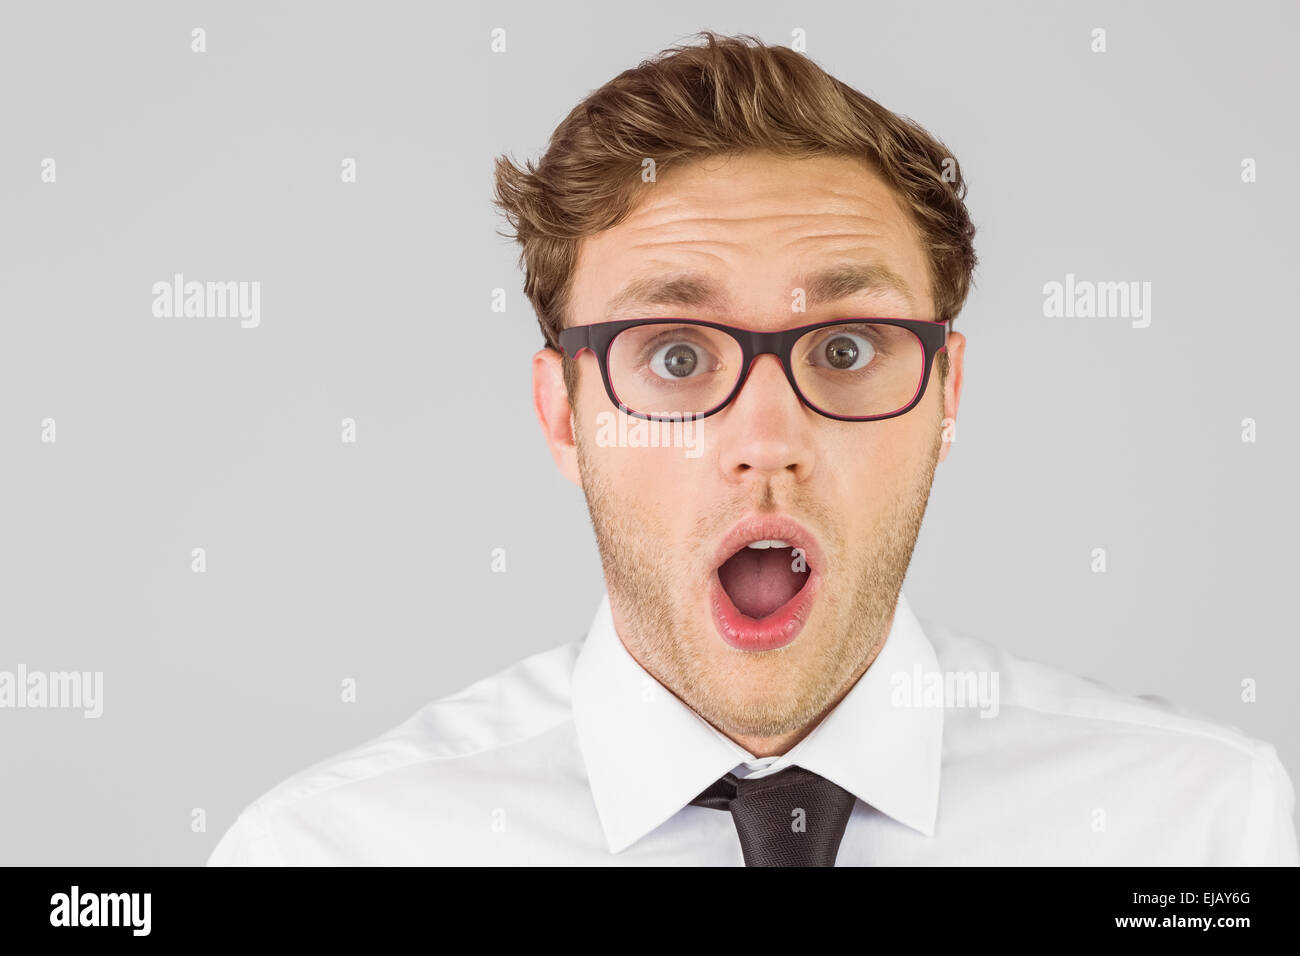 Geeky businessman looking at camera - Stock Image